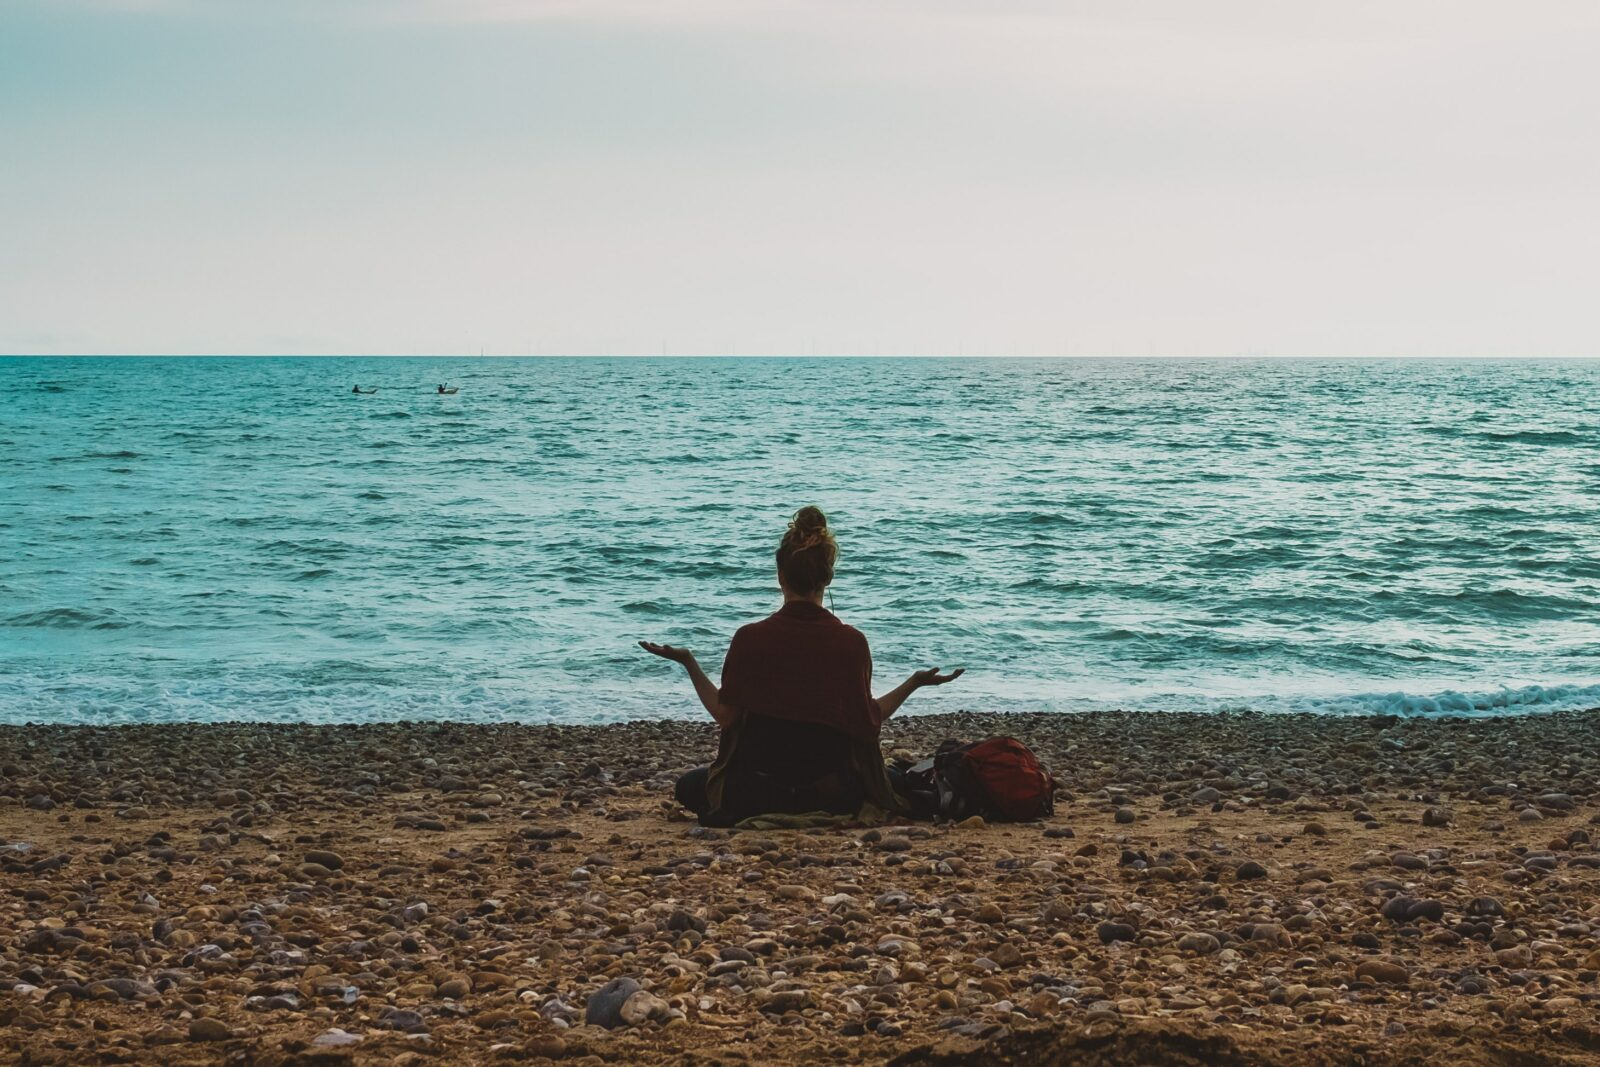 A person sitting on a beach in front of the water meditating. It shows the importance of mastering the art of 'yes and...'